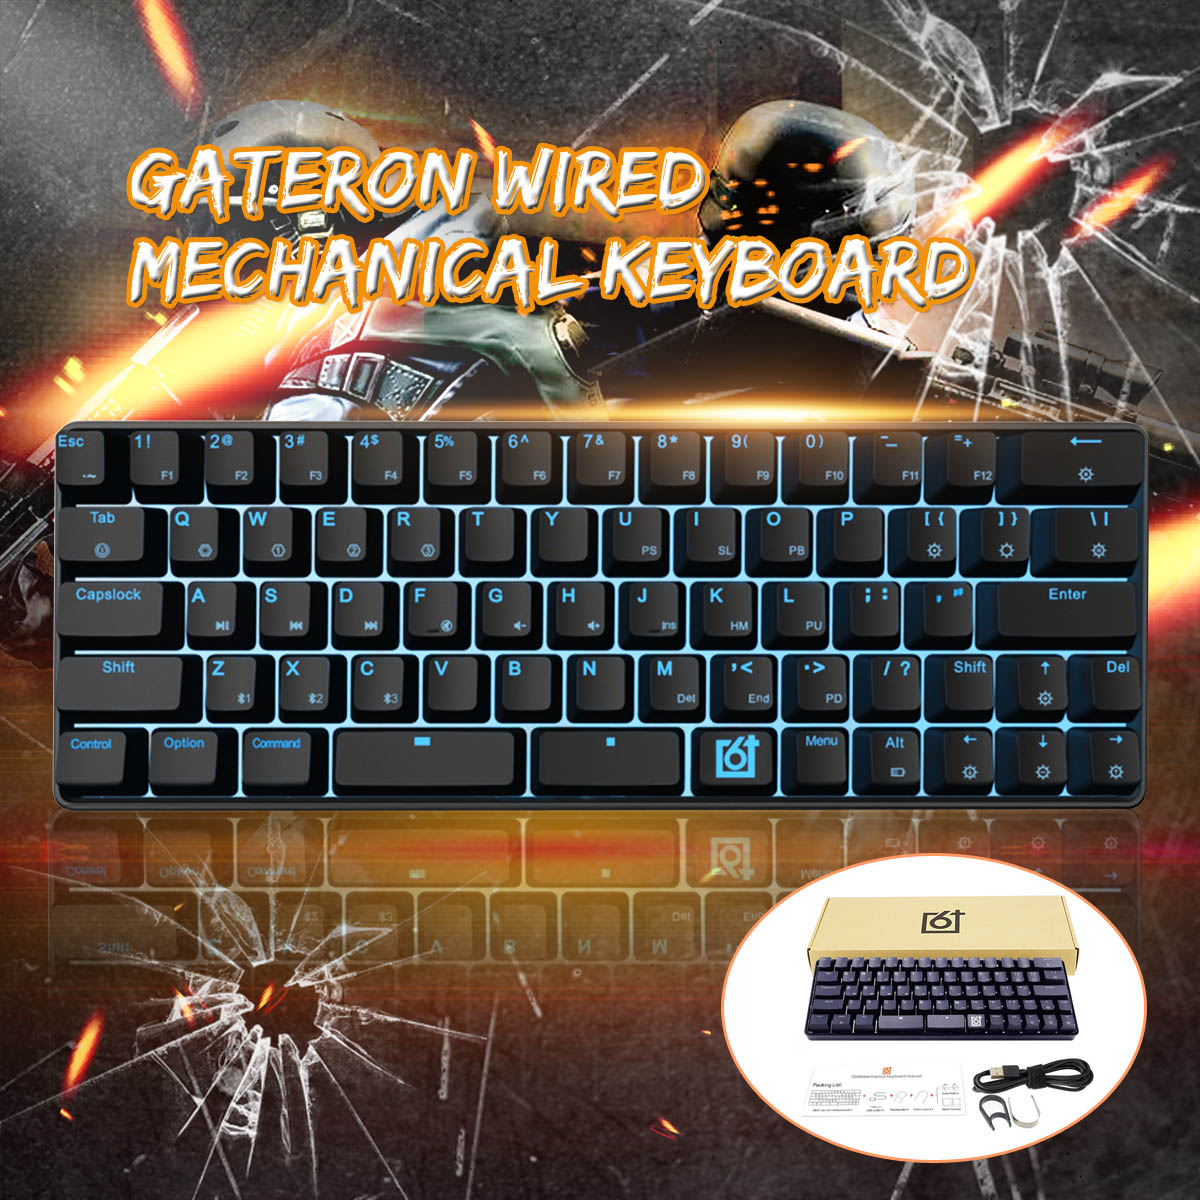 Gateron Optical Switch GK66 USB-C Wired Split-Spacebar Hot-swappable RGB Mechanical Gaming KeyboardGateron Optical Switch GK66 USB-C Wired Split-Spacebar Hot-swappable RGB Mechanical Gaming Keyboard